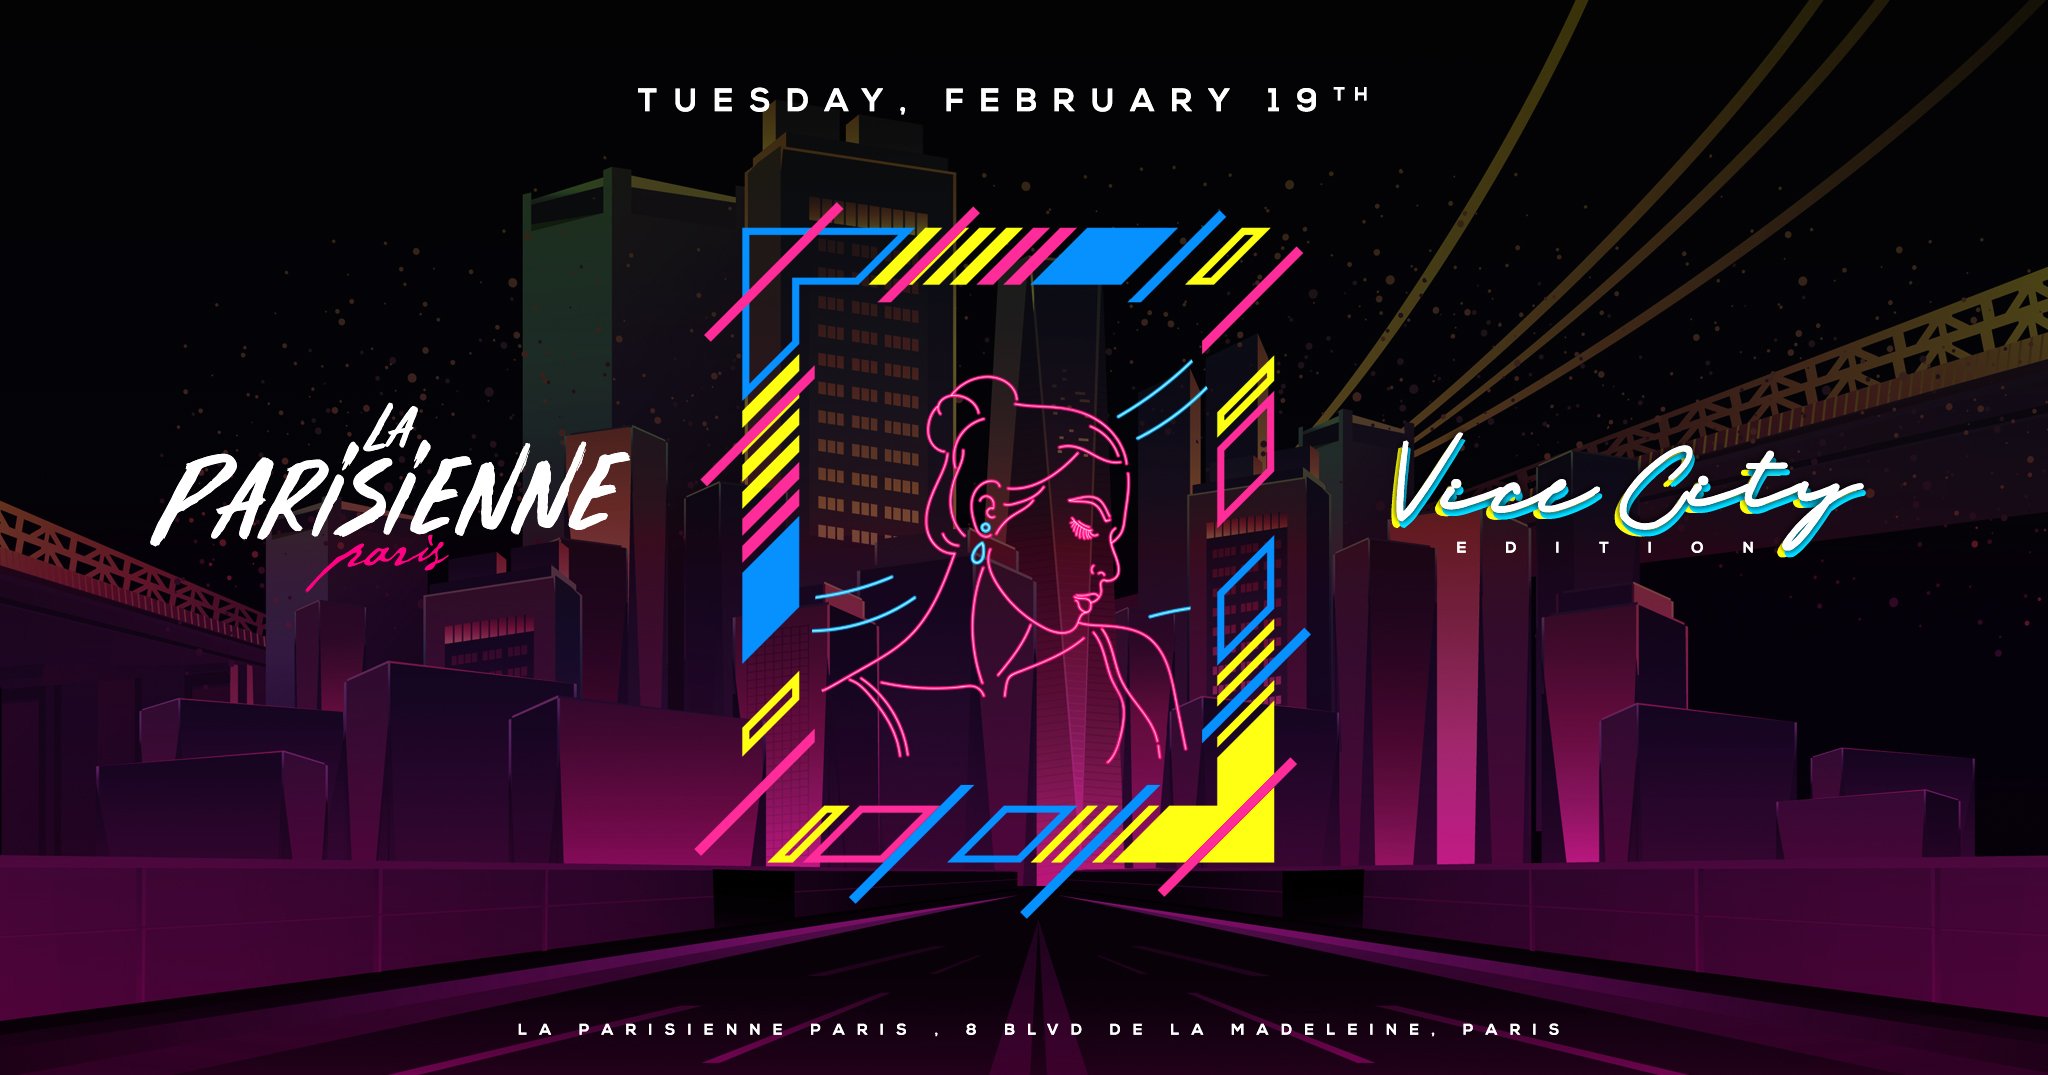 La Parisienne X Vice City Edition X Tuesday 19th Feb